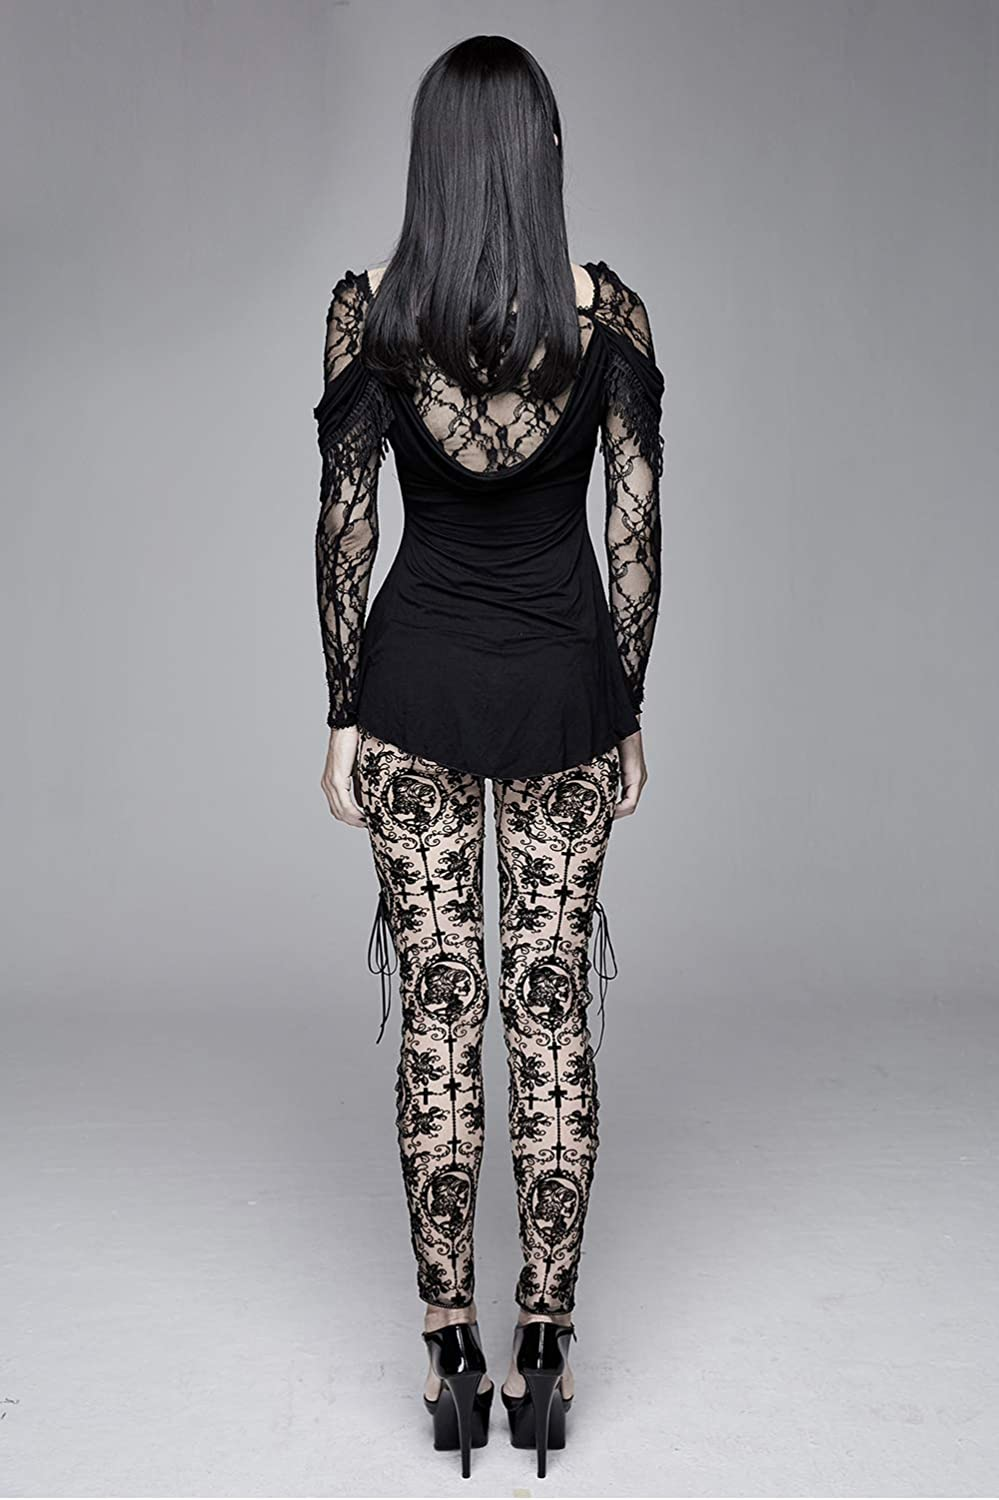 Devil Fashion Leggings for Women Stockings Stretchy High Tights Pantyhose Sexy Suspender Lace Patterned